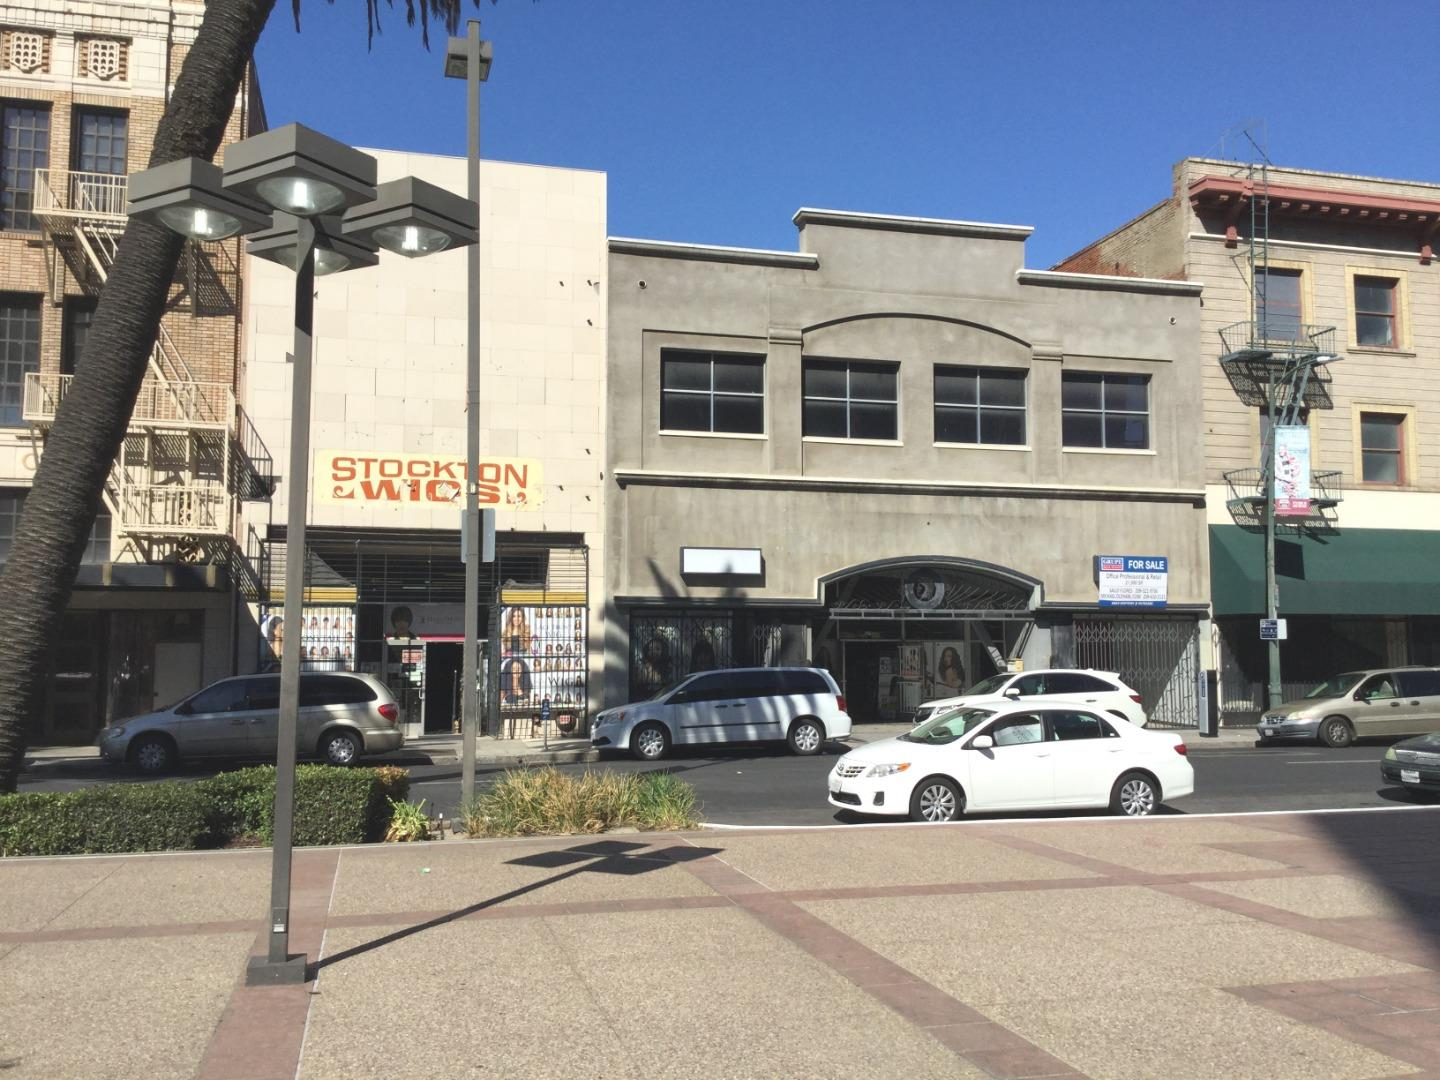 Commercial for Sale at 417 E Main Street 417 E Main Street Stockton, California 95202 United States